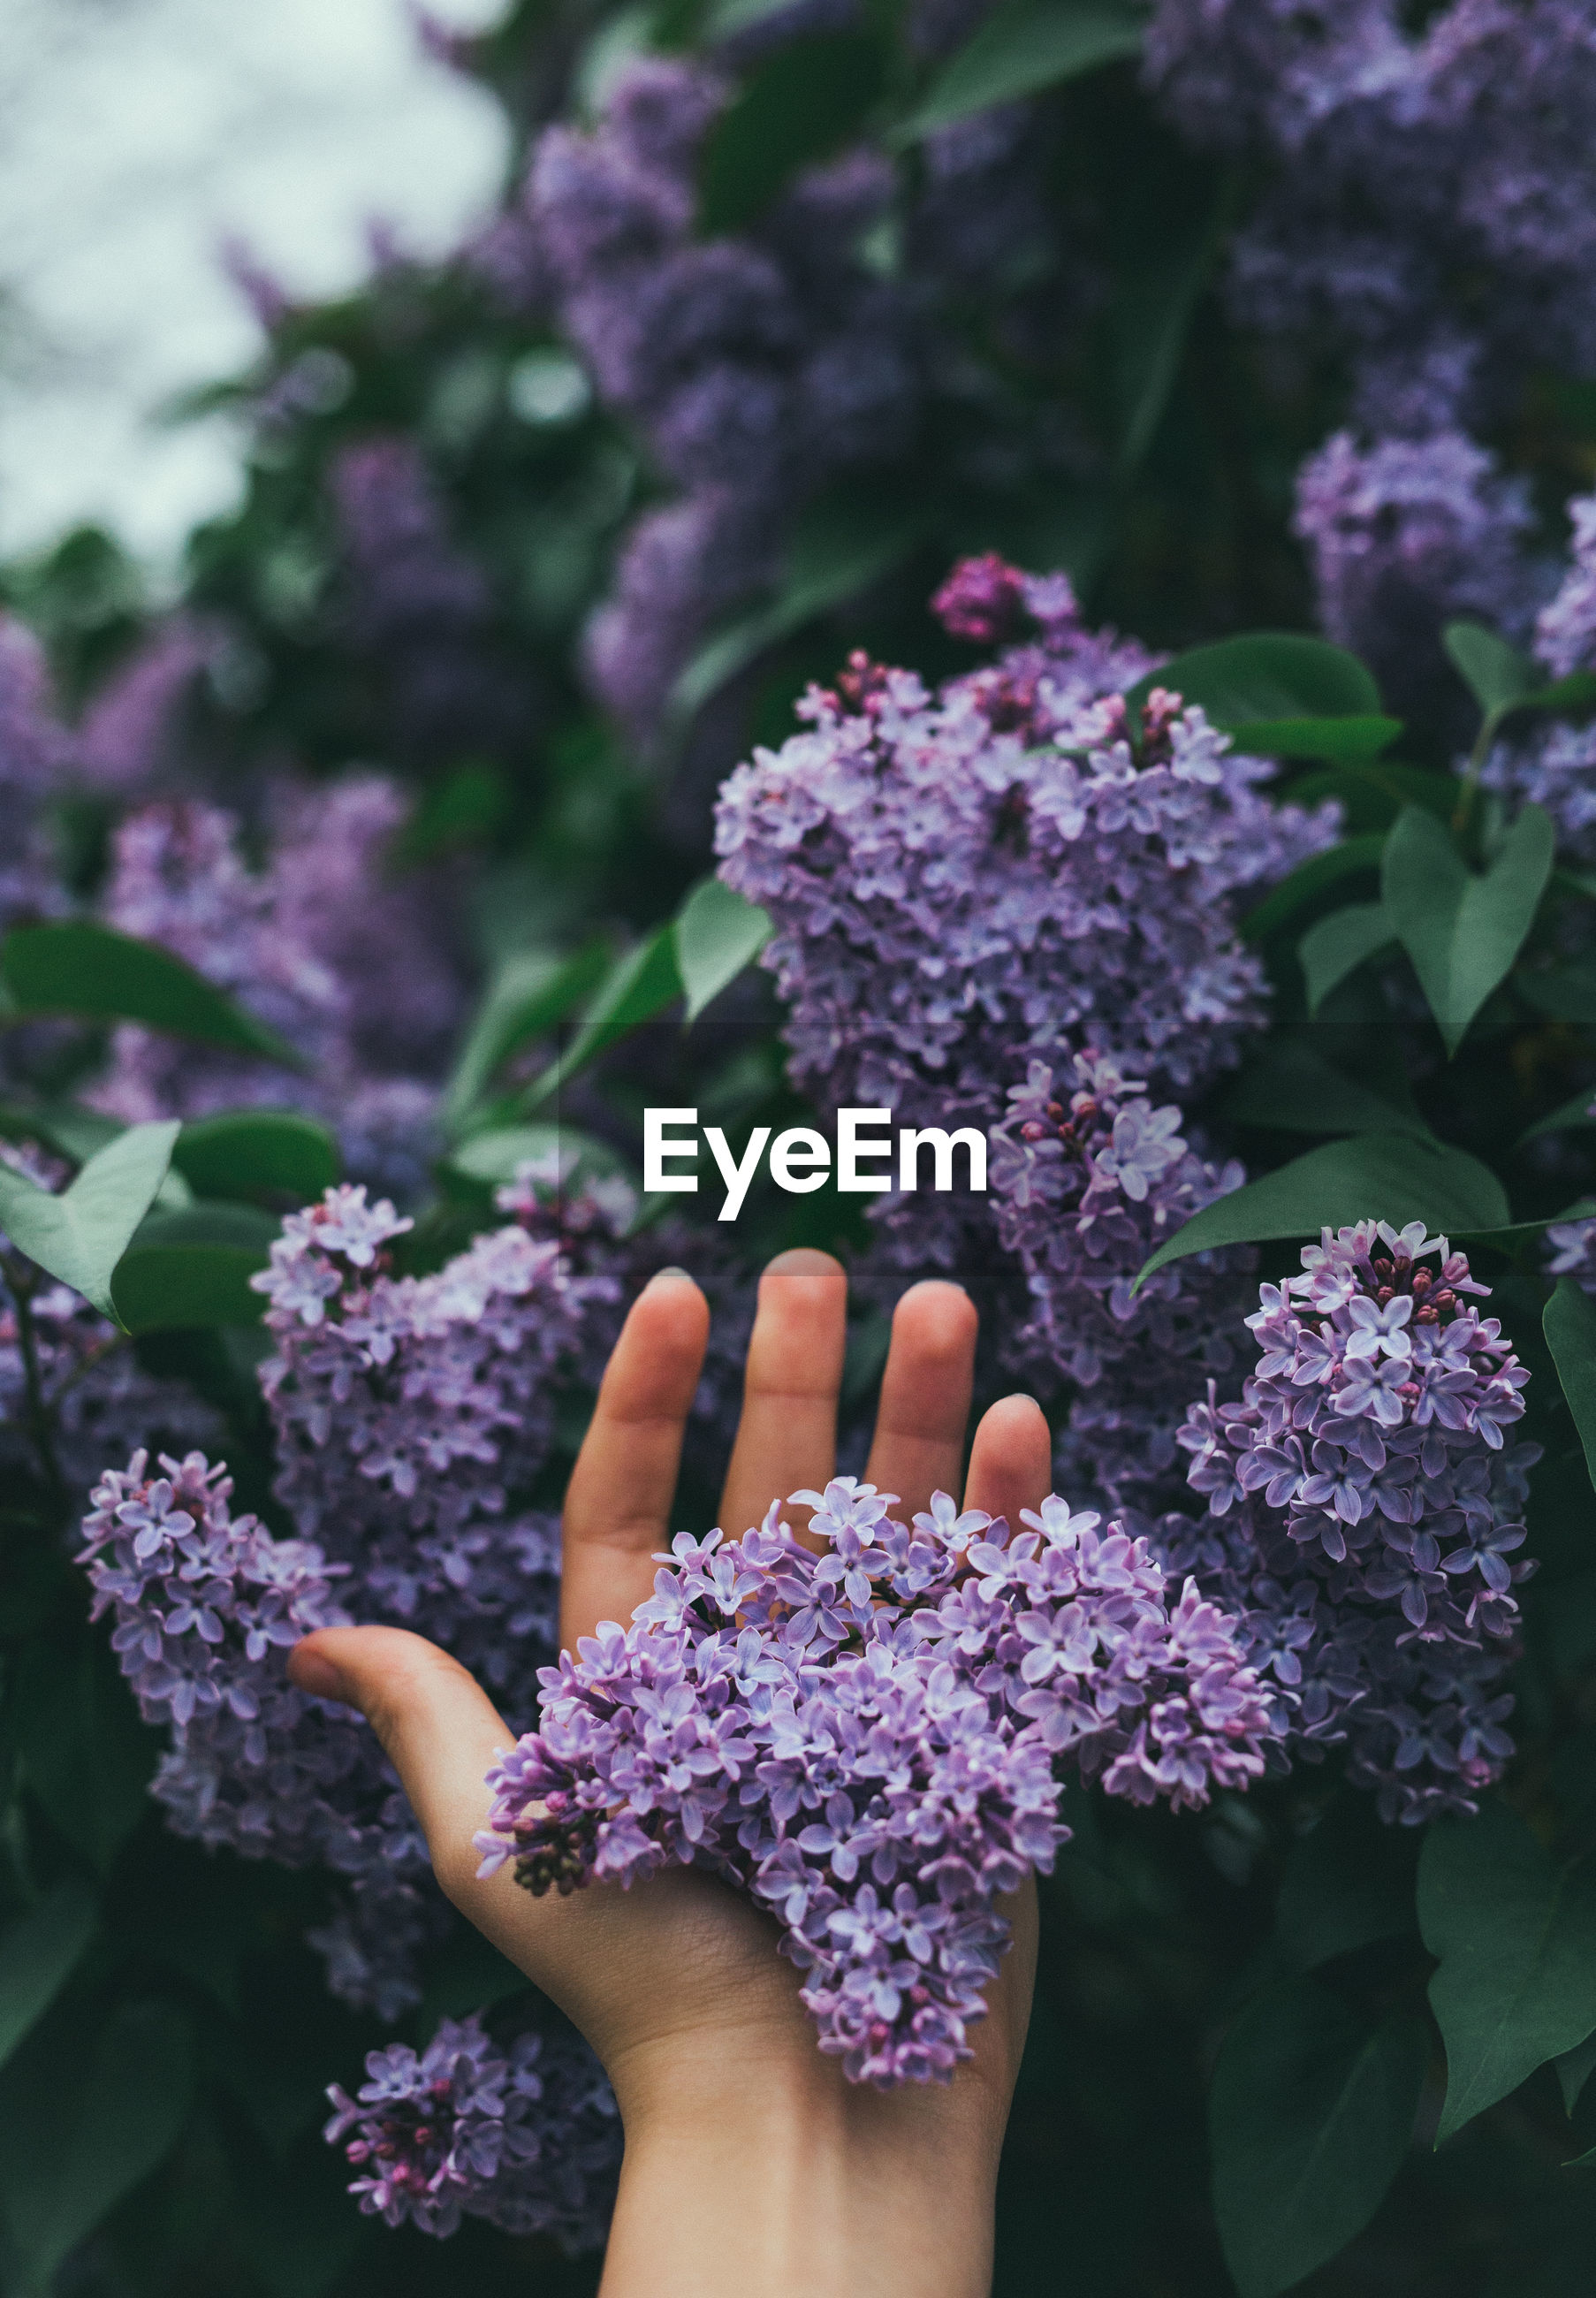 Cropped hand touching purple lilacs blooming outdoors